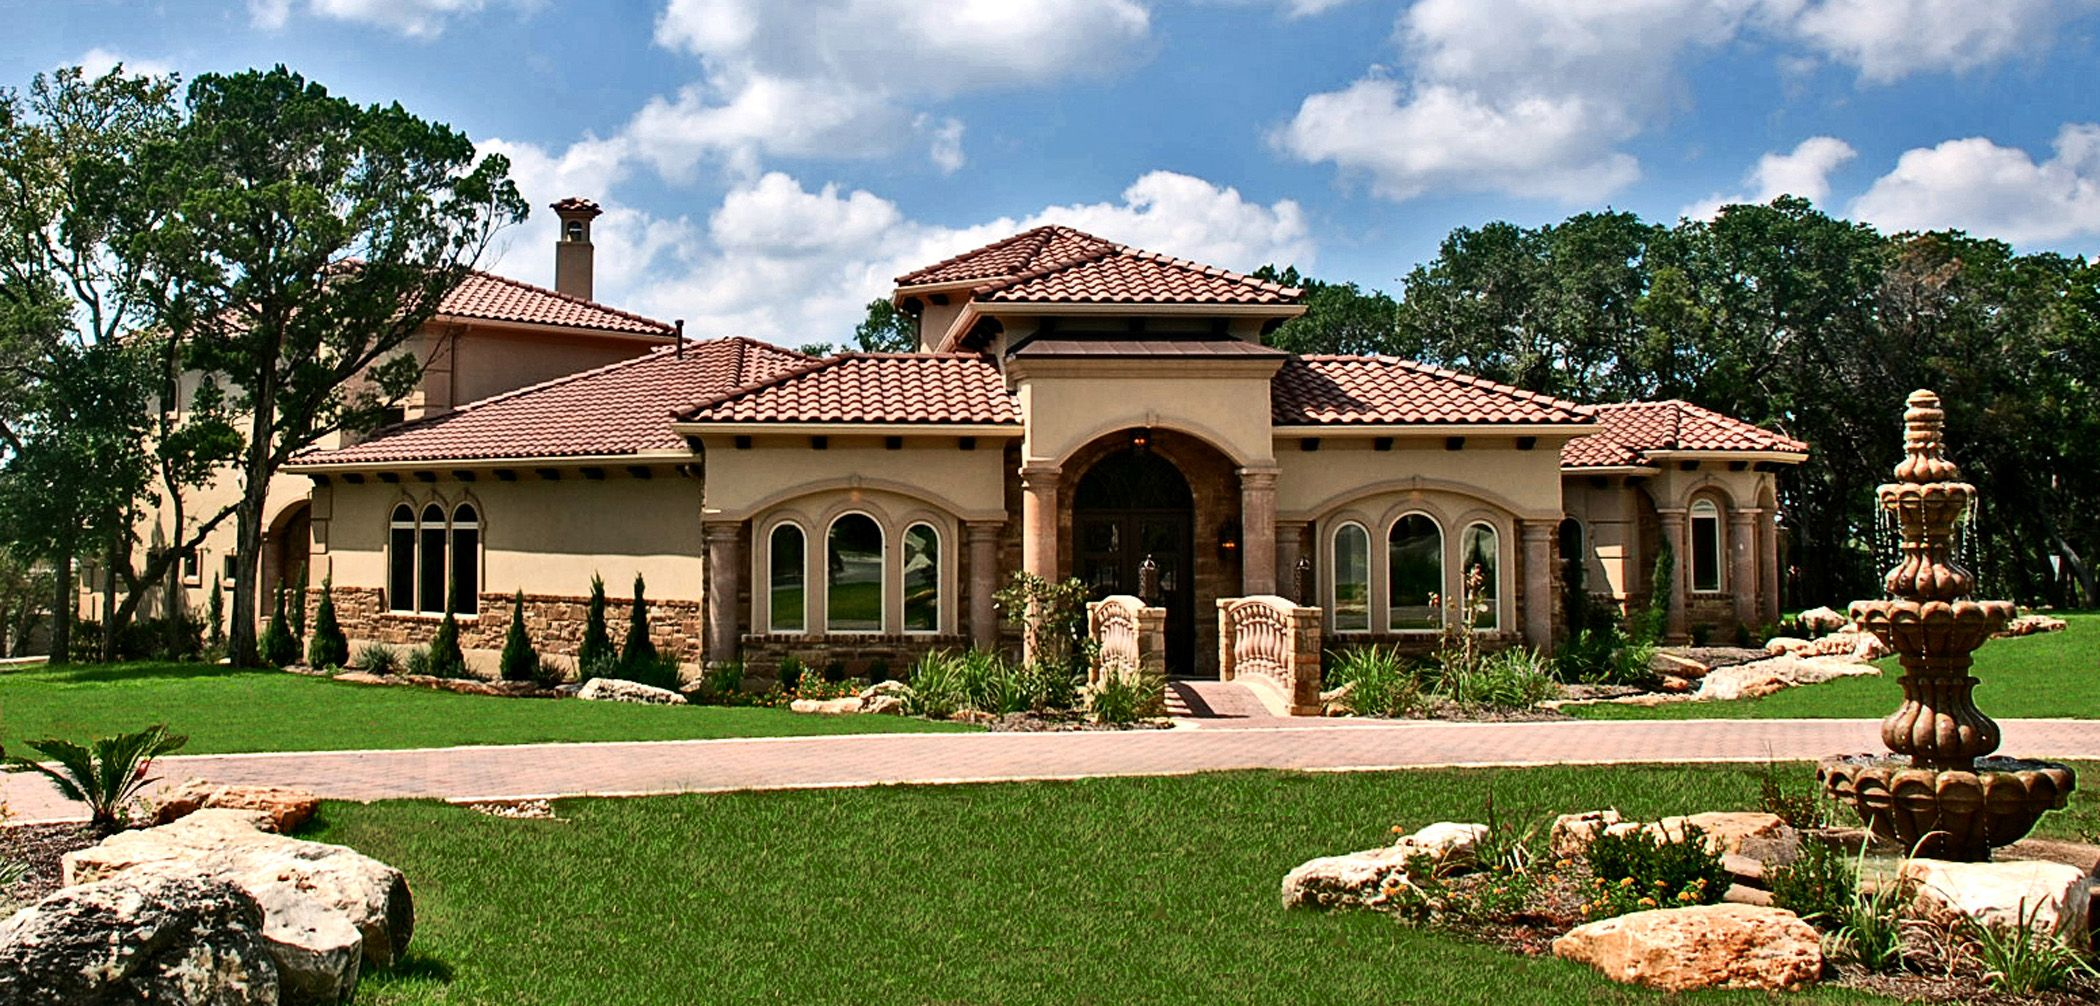 Lakeway texas tuscan front elevation by zbranek holt for Most beautiful mediterranean houses